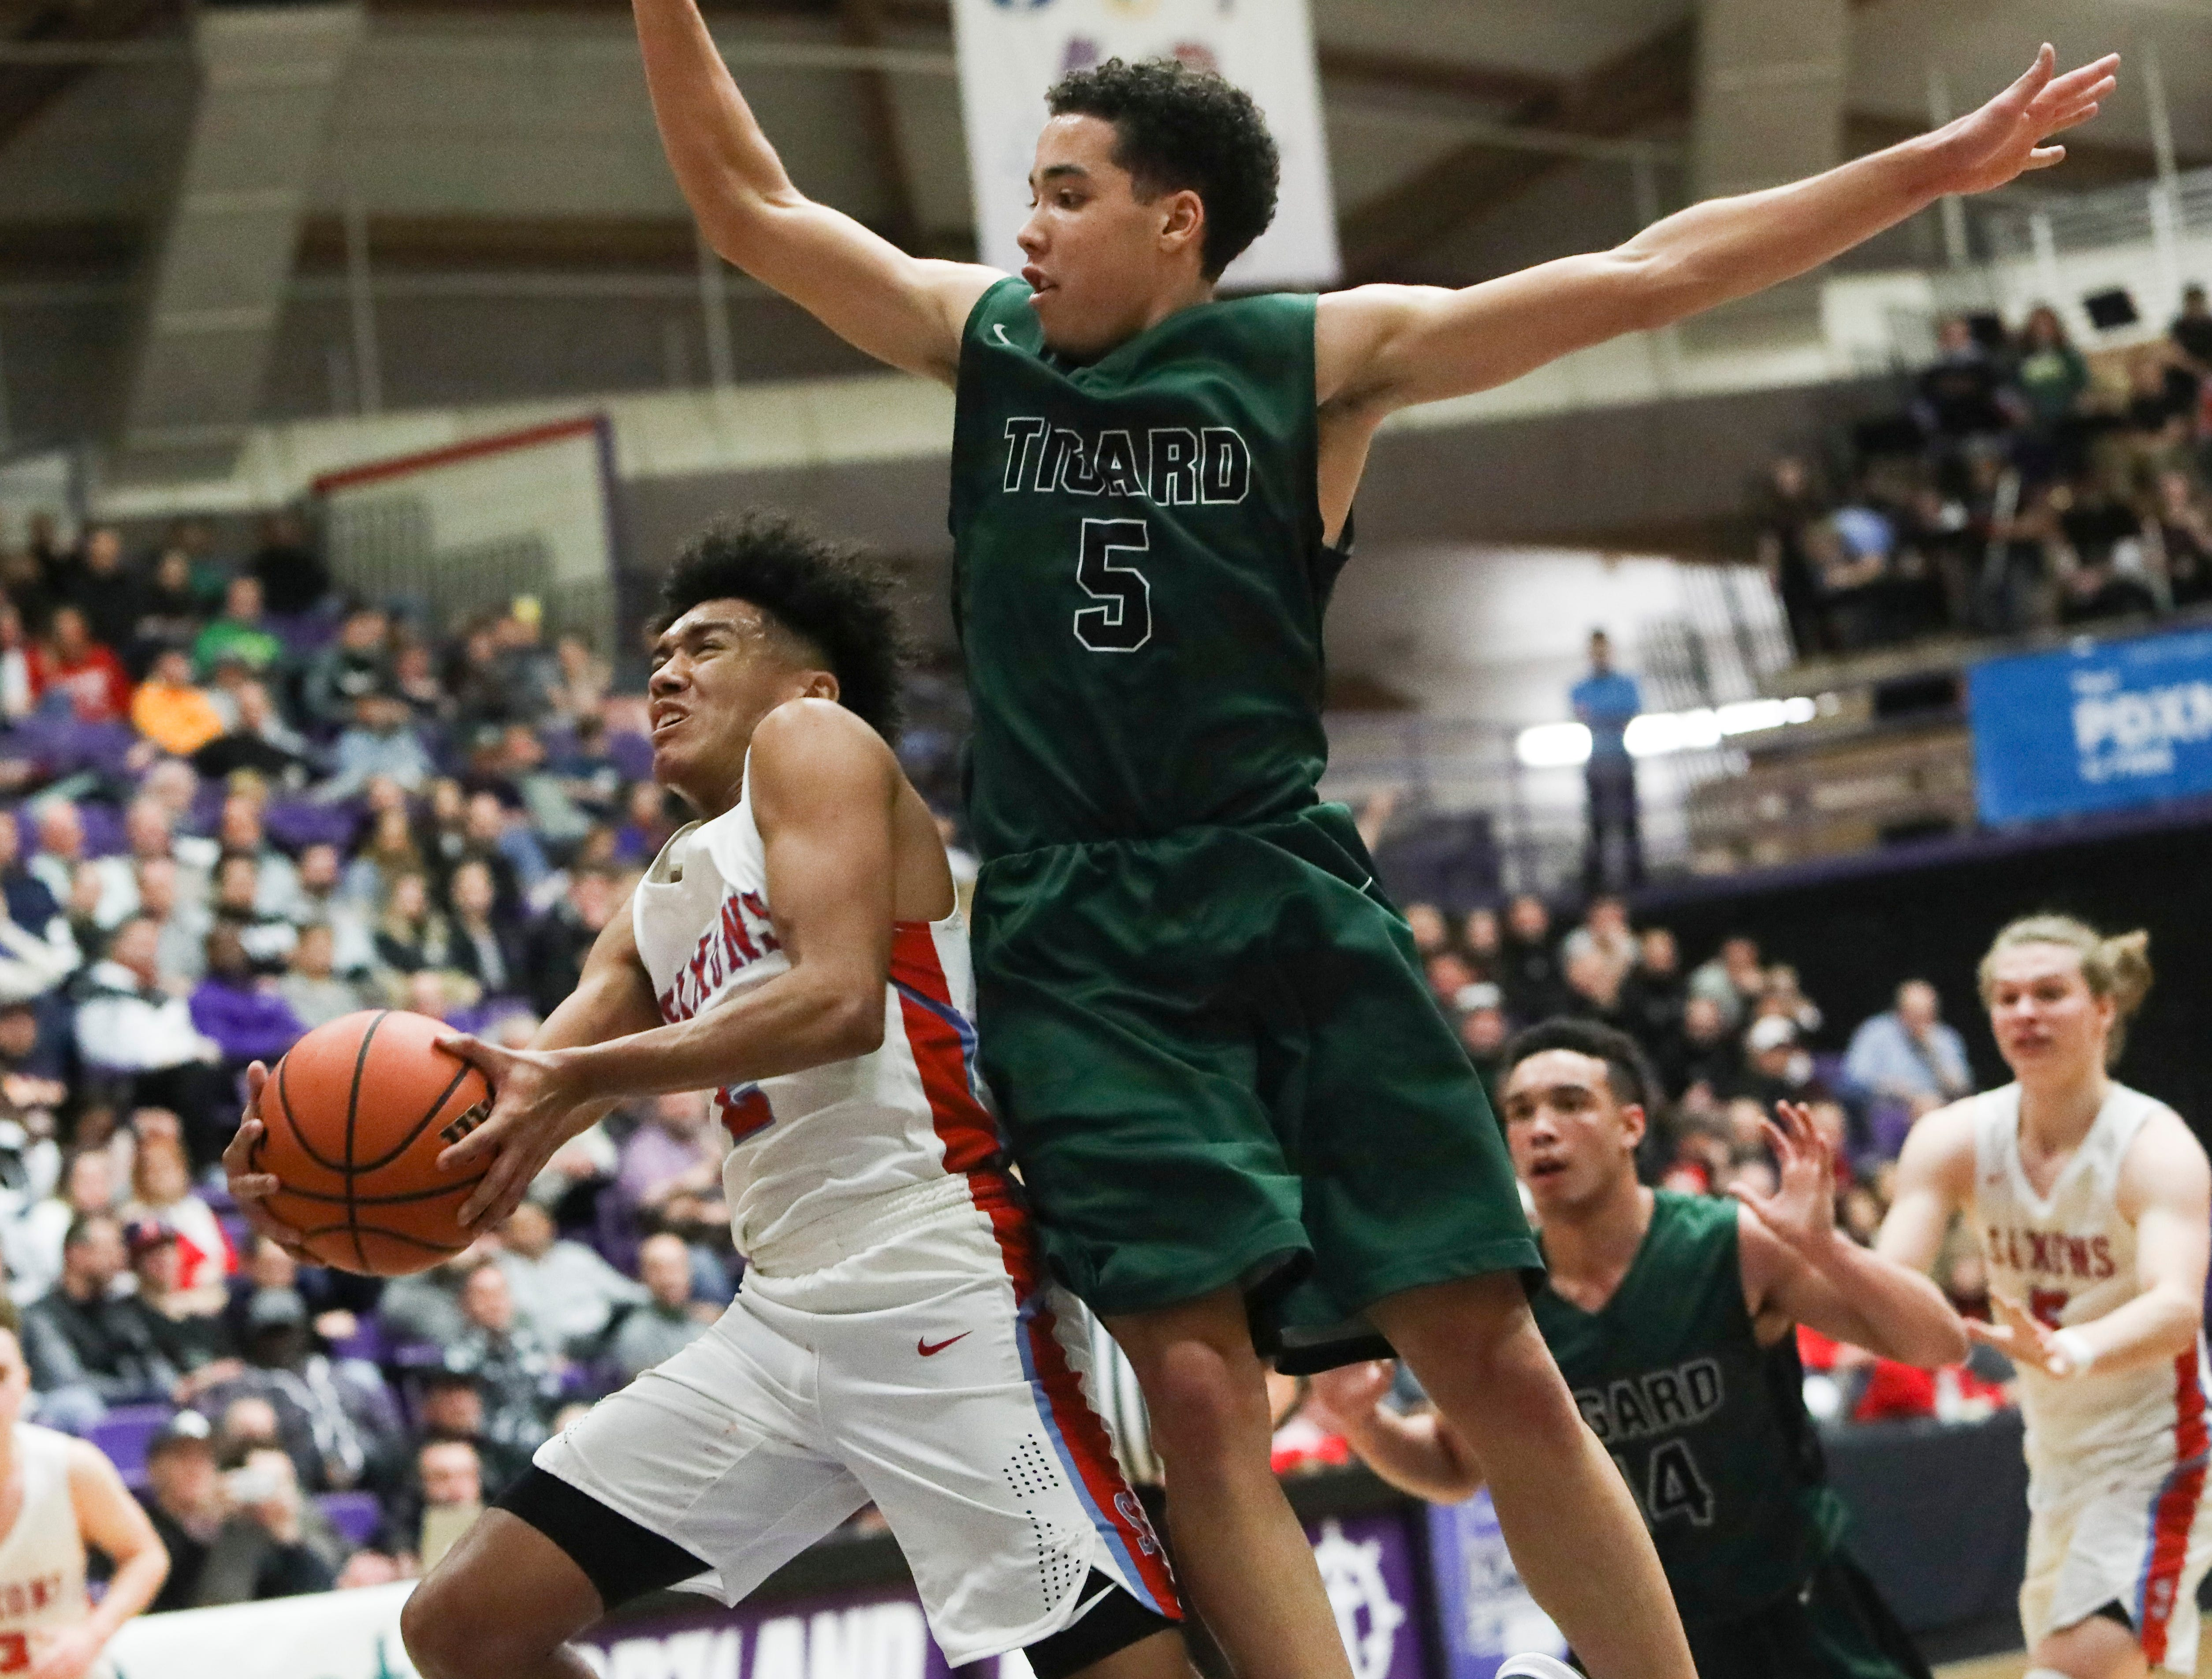 Tigard's Drew Carter (5) tries to block a shot by South Salem's Jaden Nielsen-Skinner (2) during the OSAA 6A boys basketball state tournament quarterfinal on Wednesday, March 6 at Chiles Center.